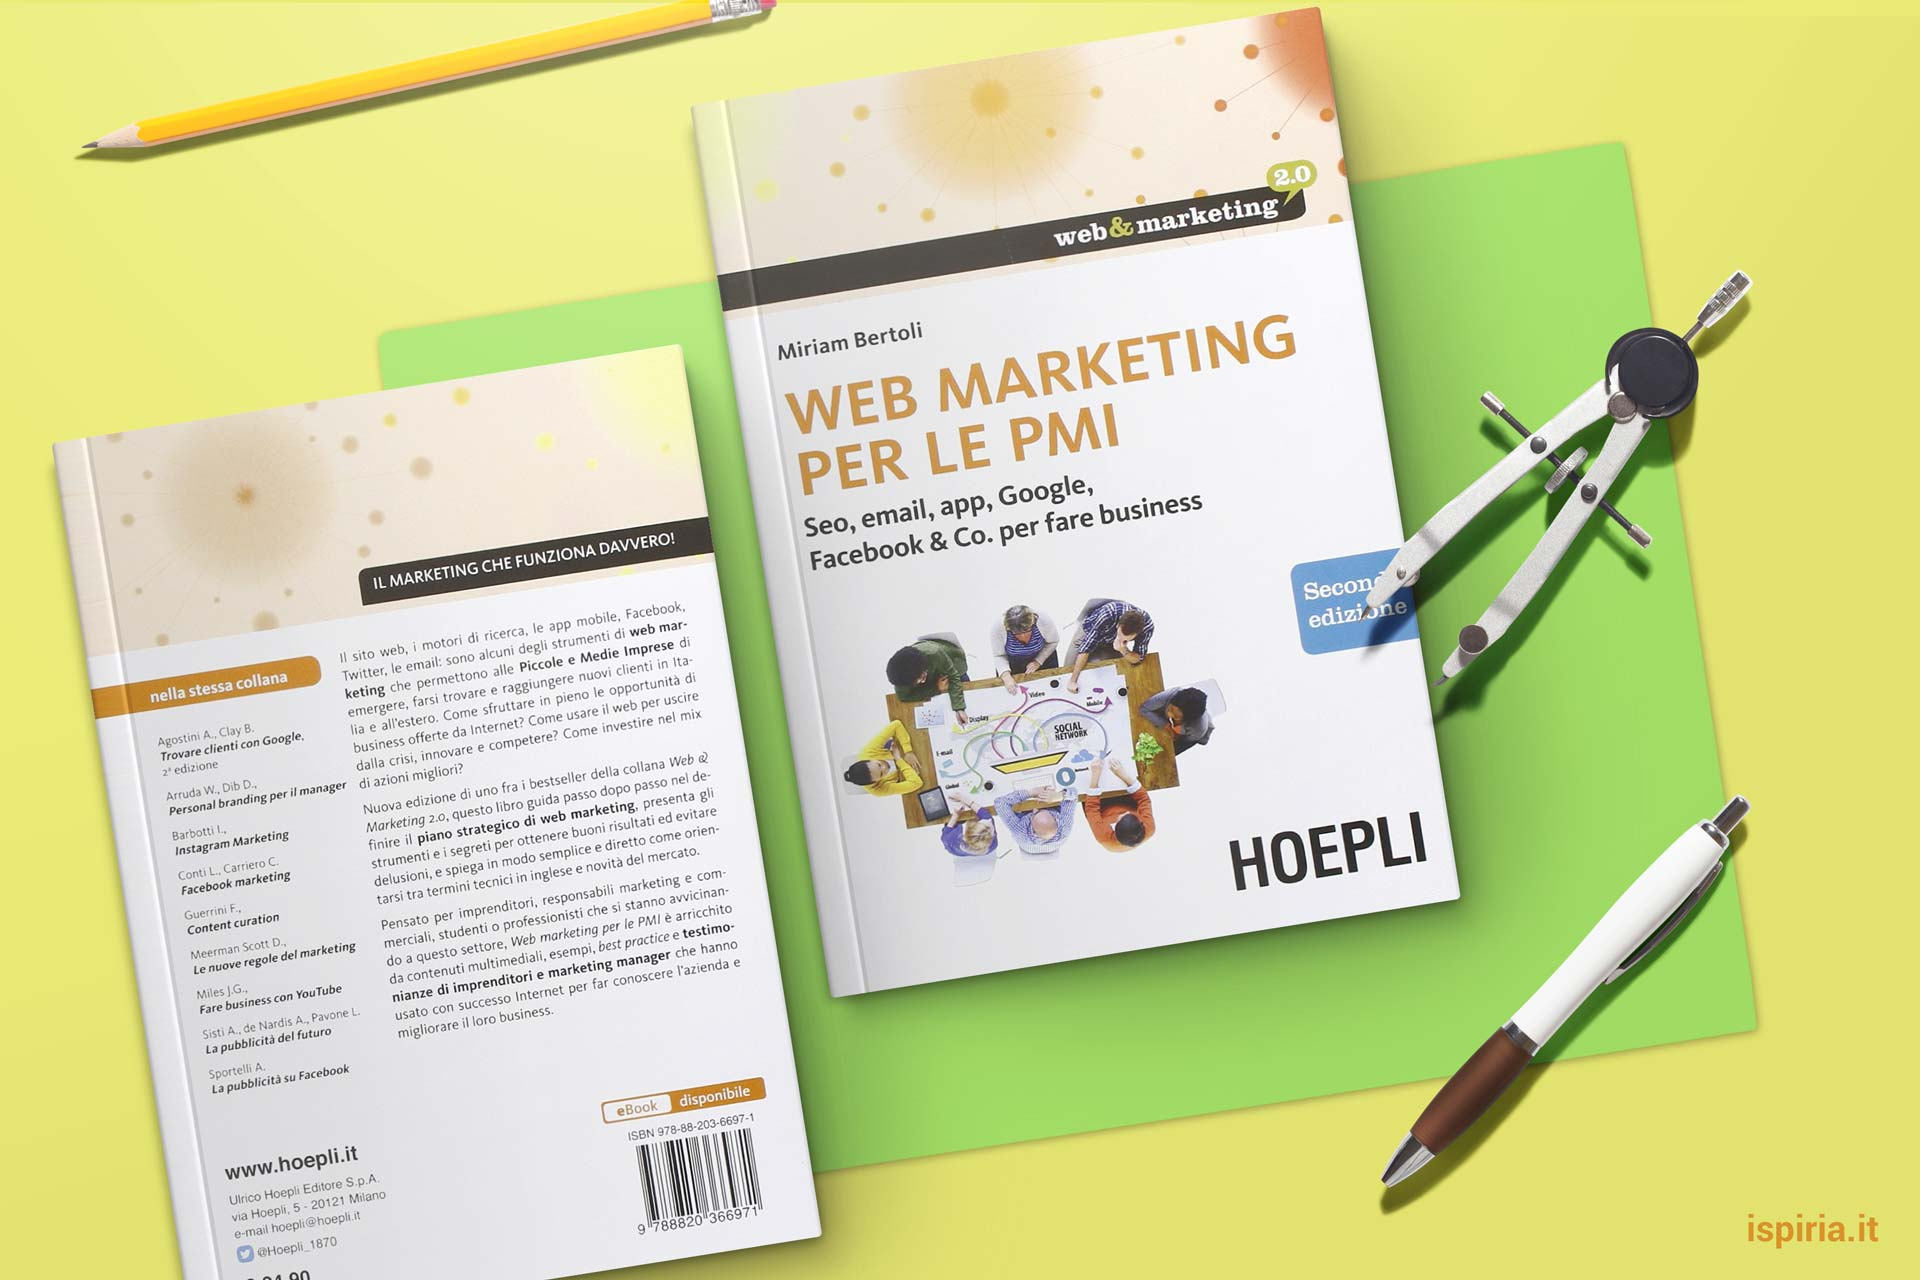 migliori libri di web marketing per pmi impresa